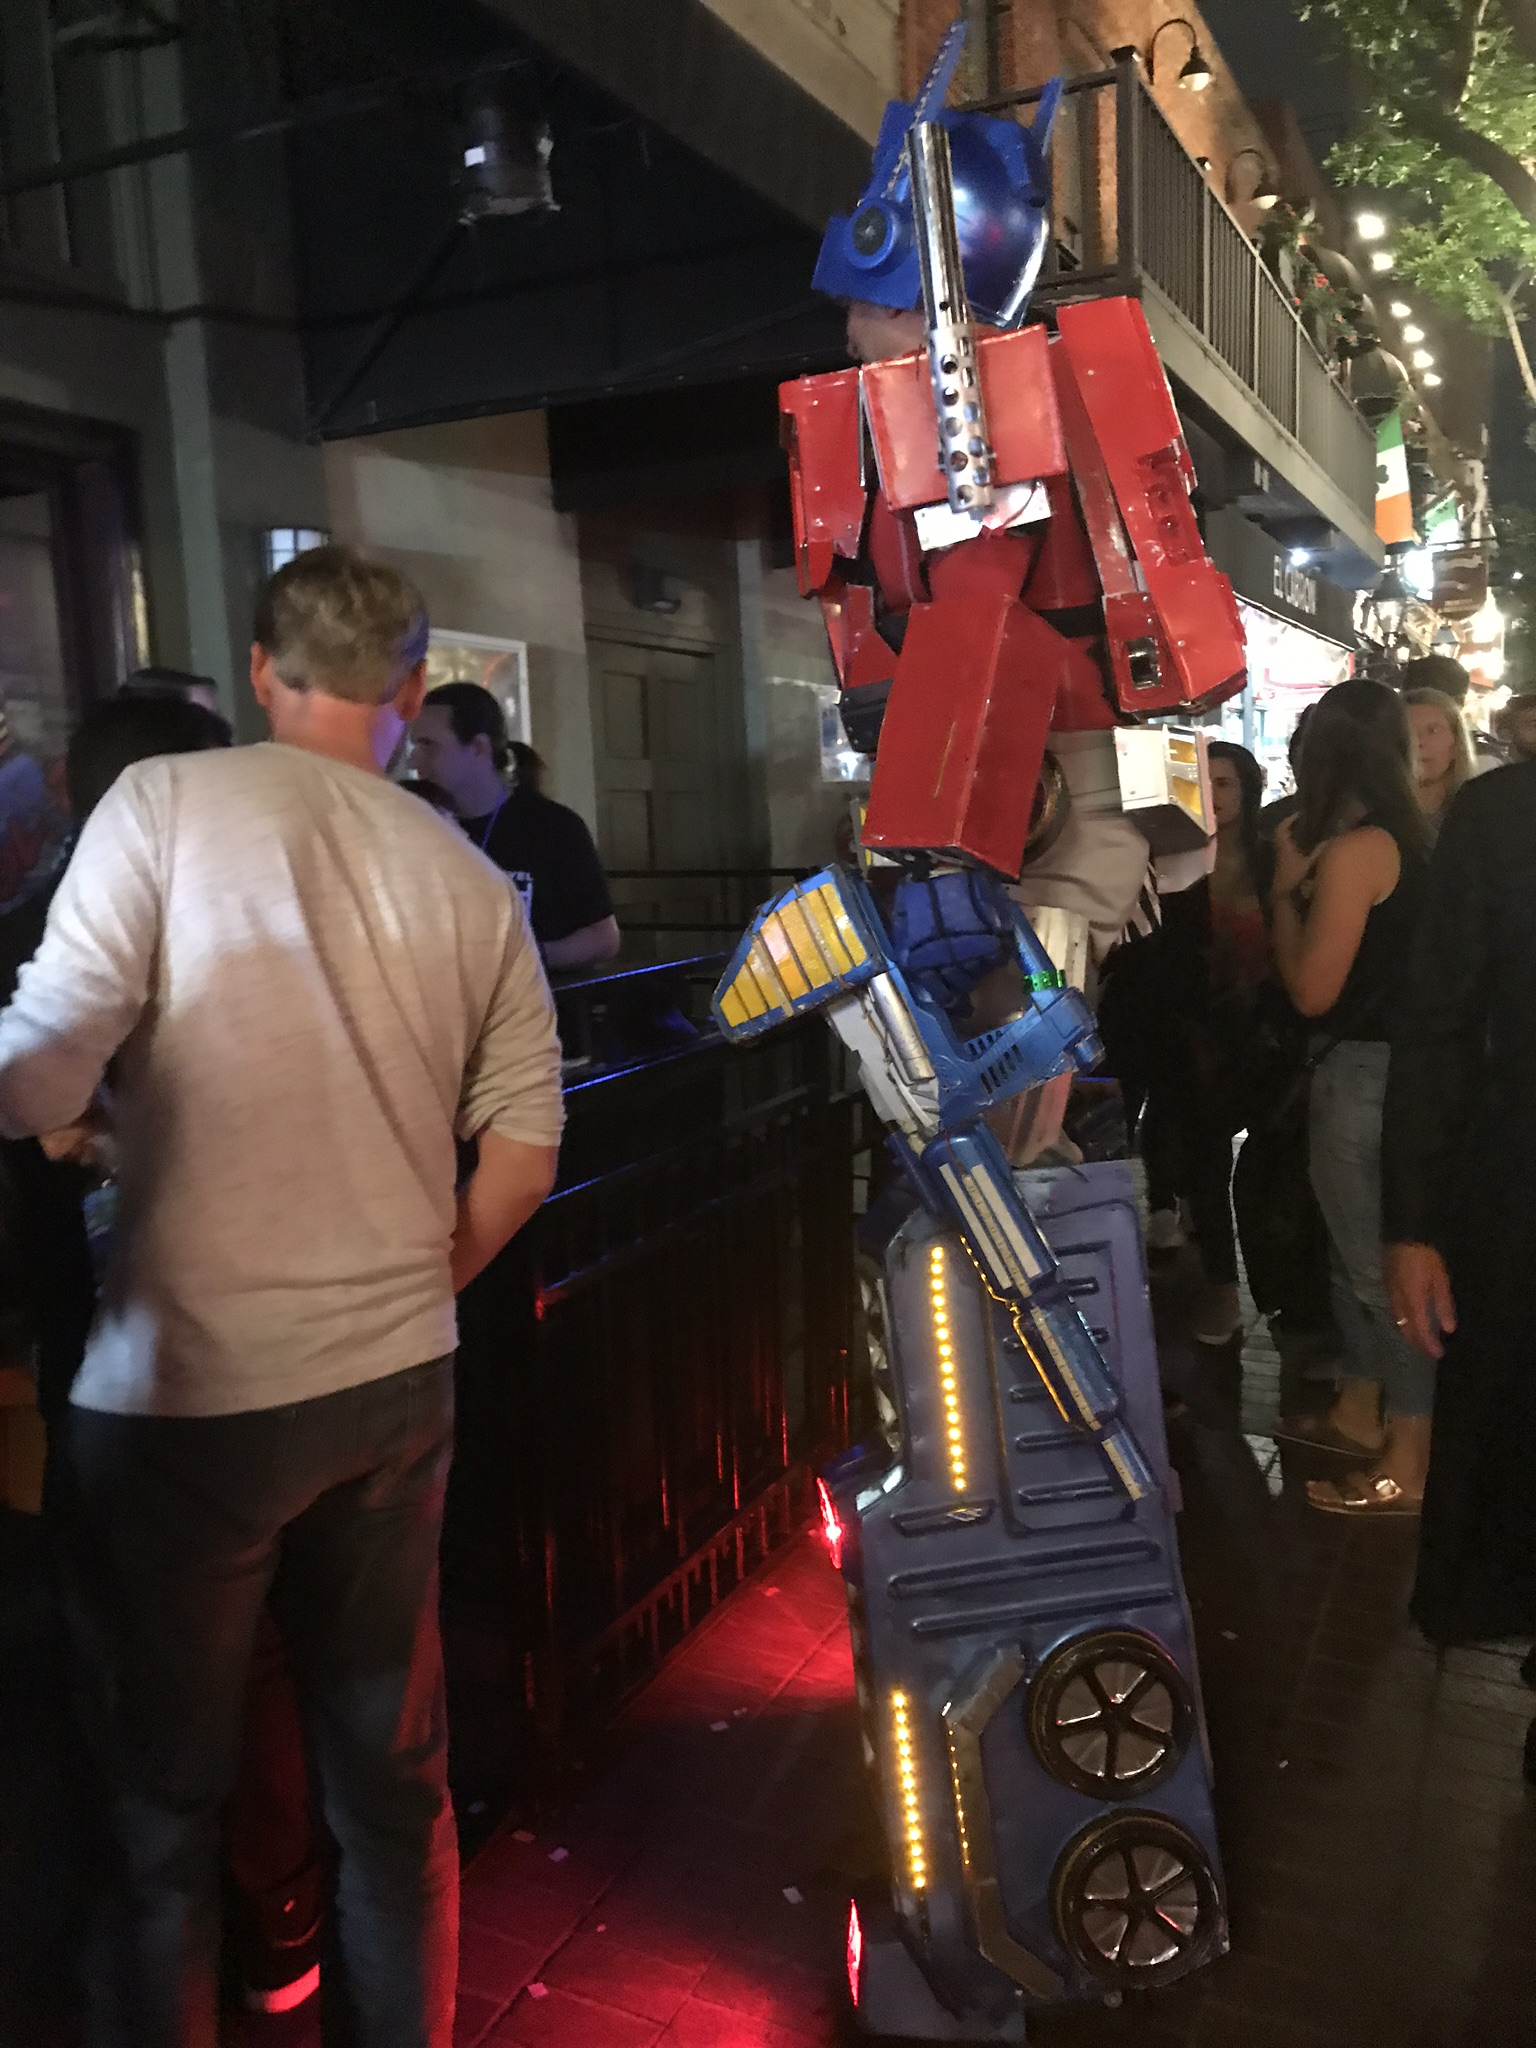 This picture doesn't really put into perspective of how tall Optimus Prime was. I saw him around the block. Later in the night I saw him again